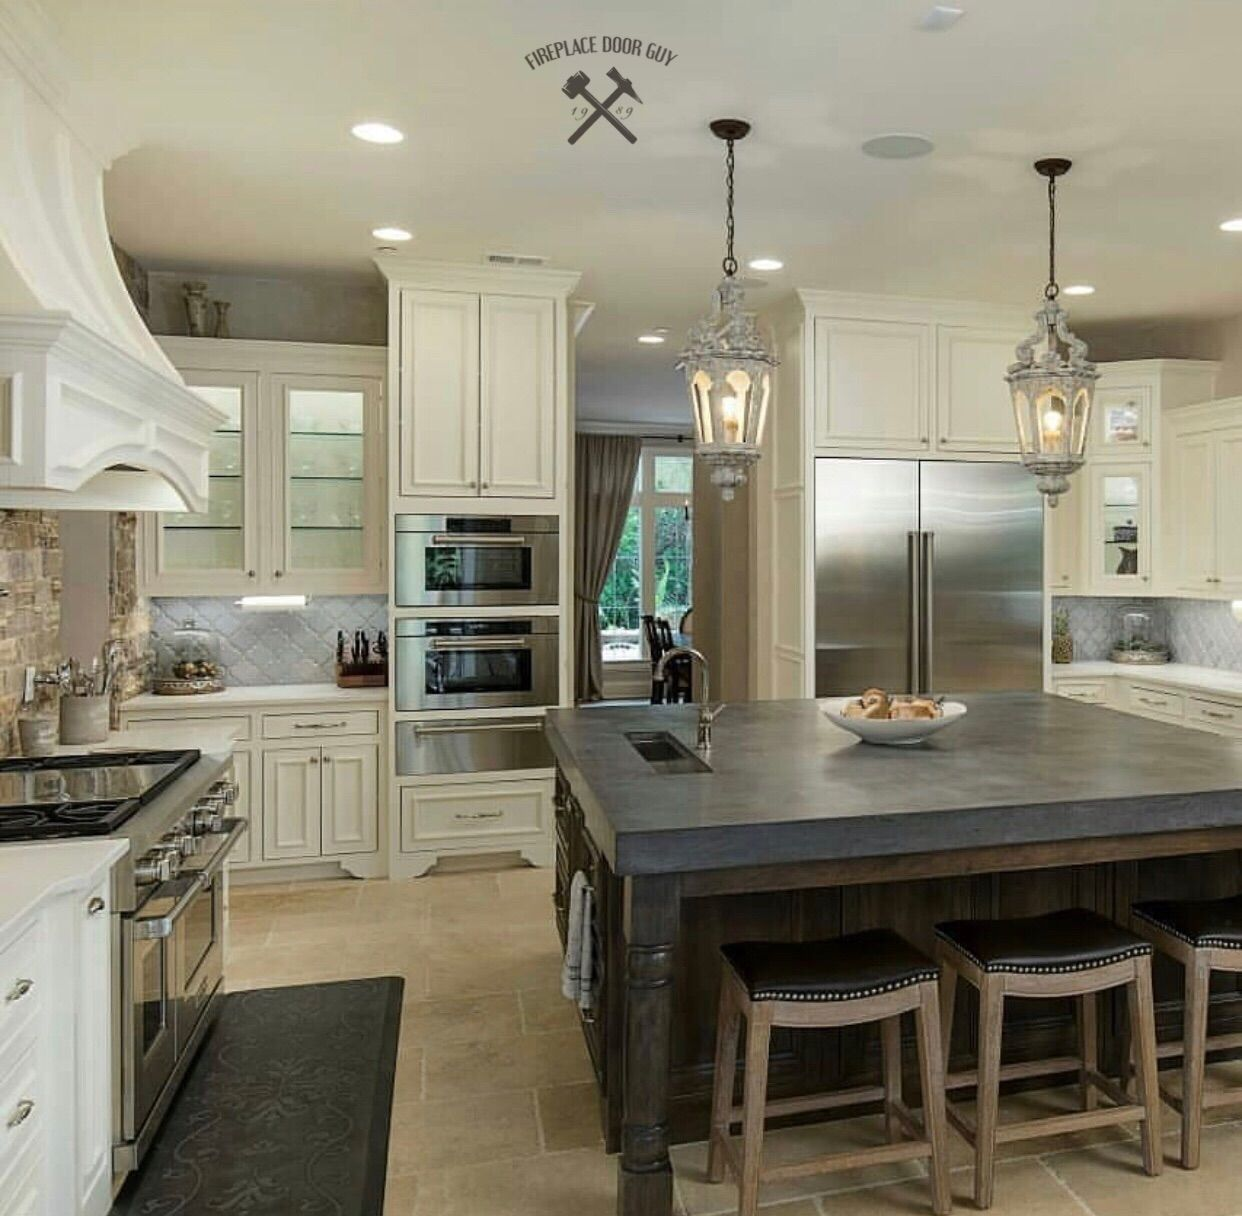 Gorgeous Modern Kitchen Remodel With A Granite Kitchen Island Kitchenisland Kitchenremodel Homeremodel Home Decor Interior Design Colleges Trending Decor